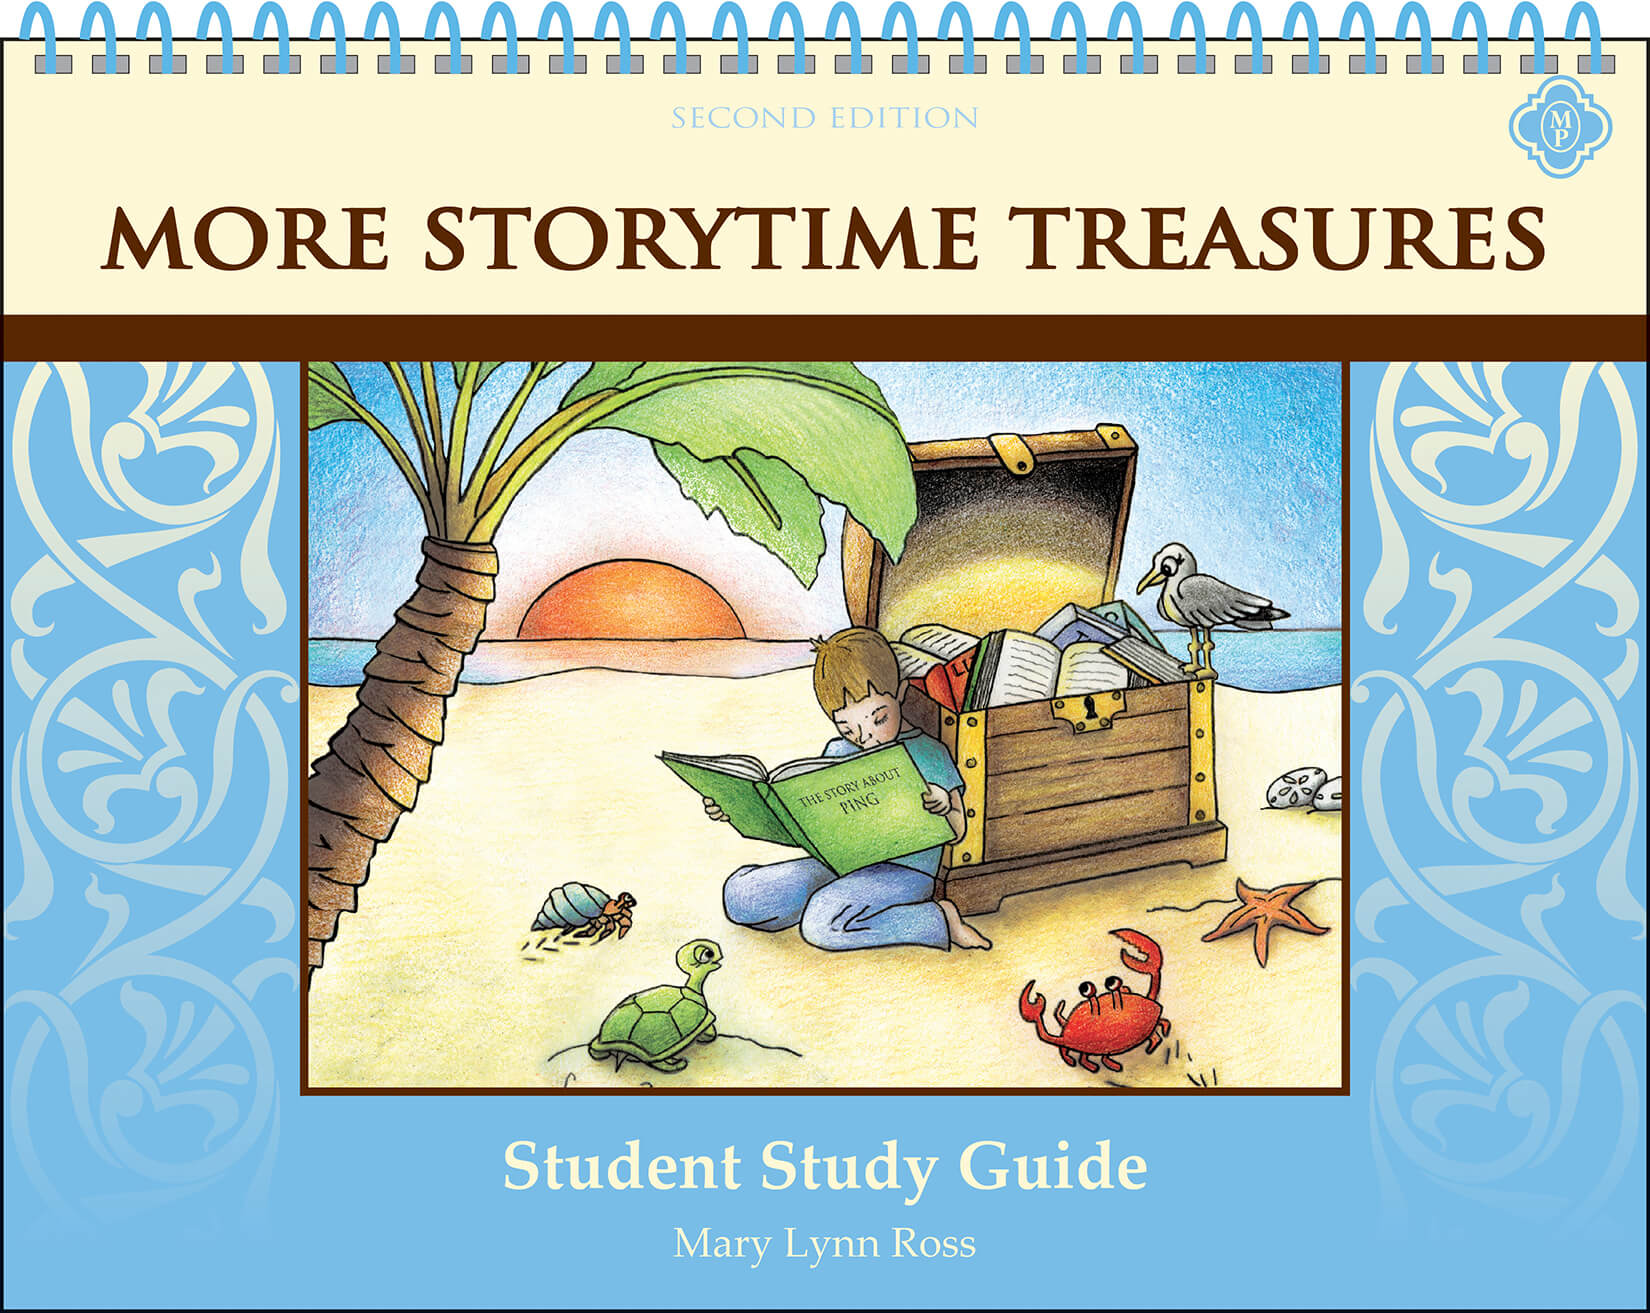 More Storytime Treasures Student (2nd ed)